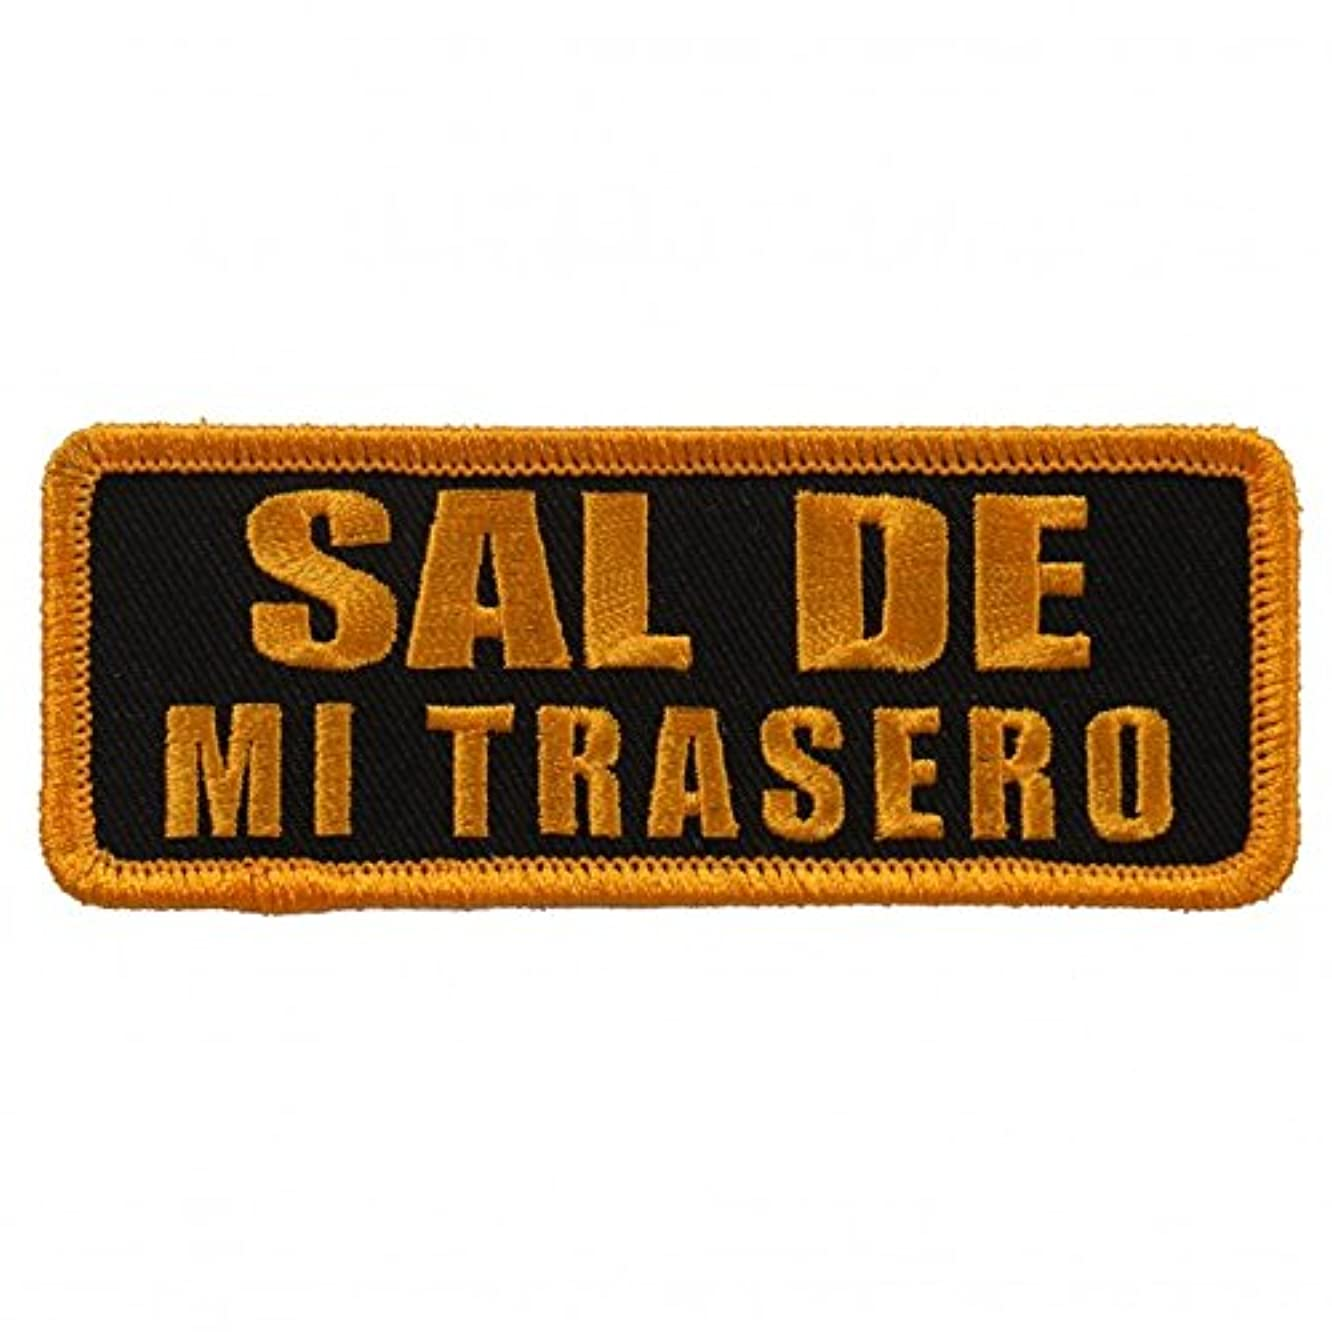 SAL DE MI TRASERO, High Thread Embroidered Iron-On / Saw-On, Heat Sealed Backing Rayon PATCH - 4